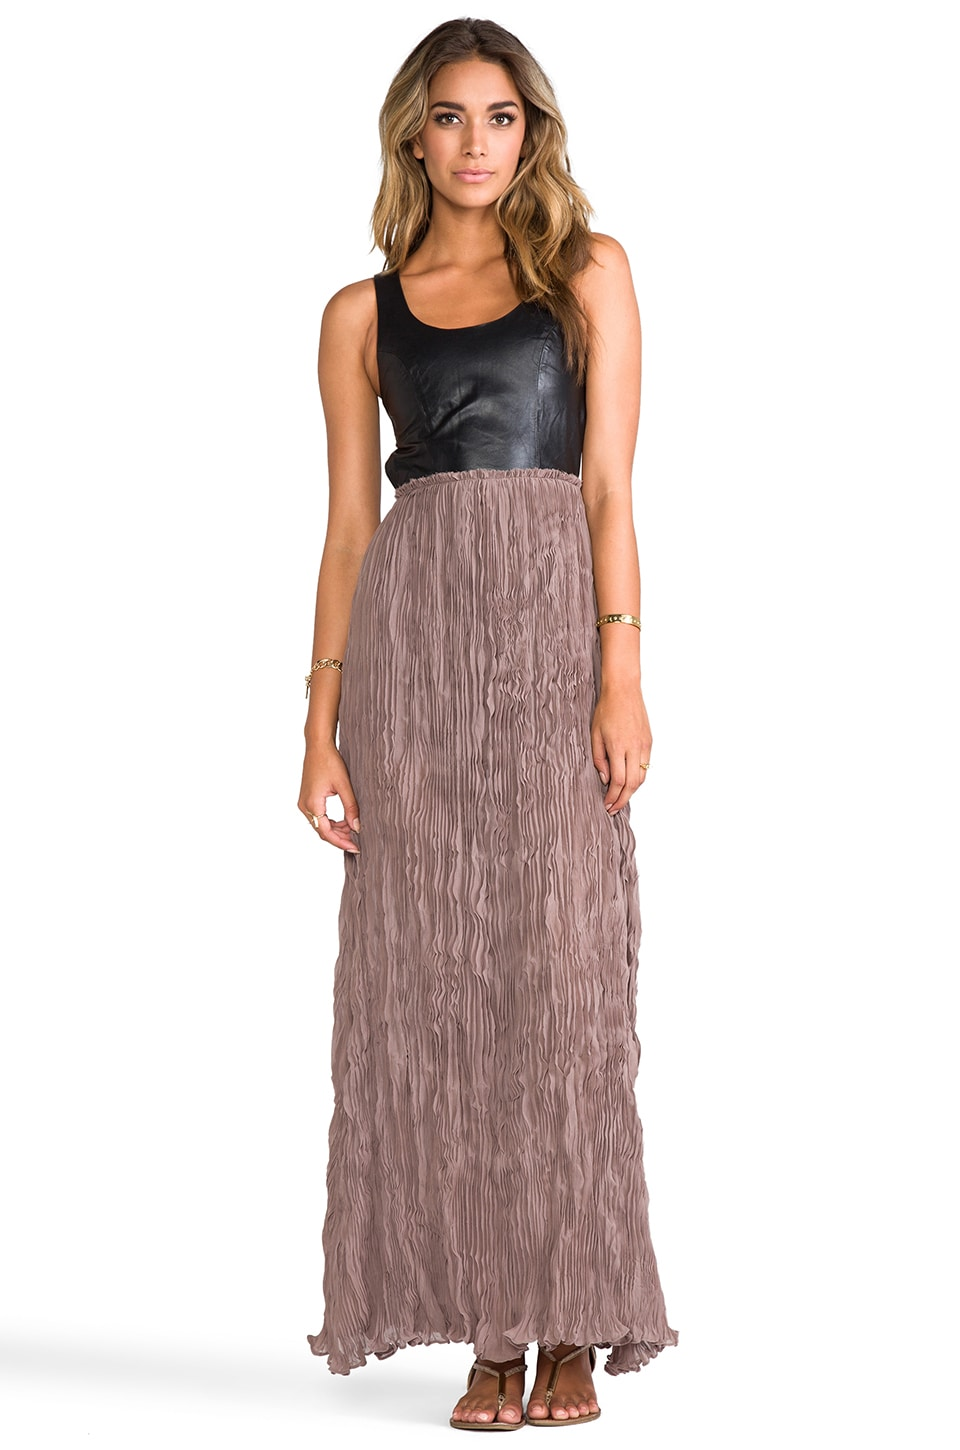 BLAQUE LABEL Leather Detailed Backless Dress in Black/Wood